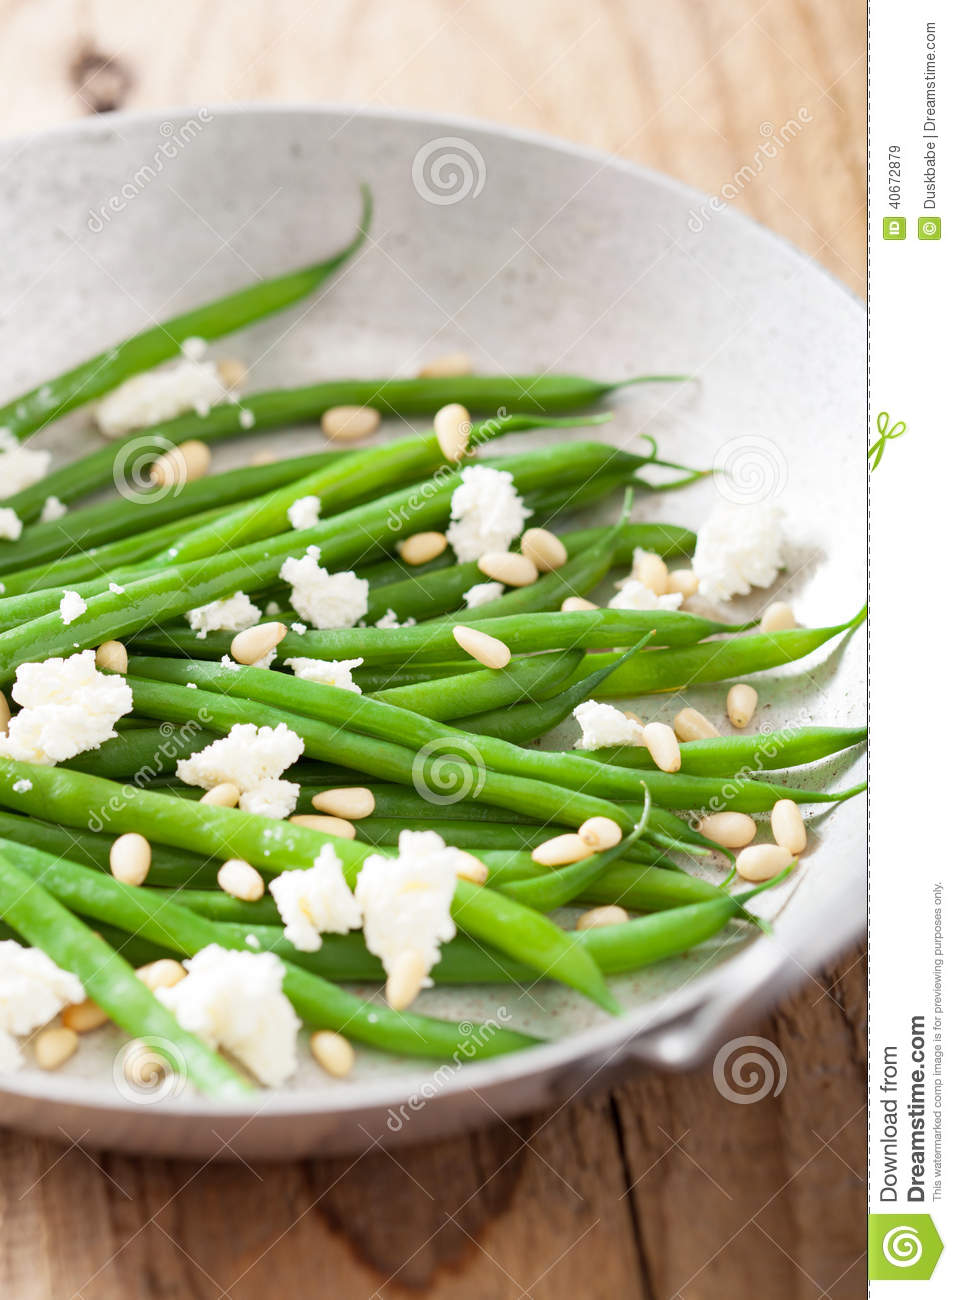 Green Beans Salad With Goat Cheese And Pine Nuts Stock Photo - Image ...